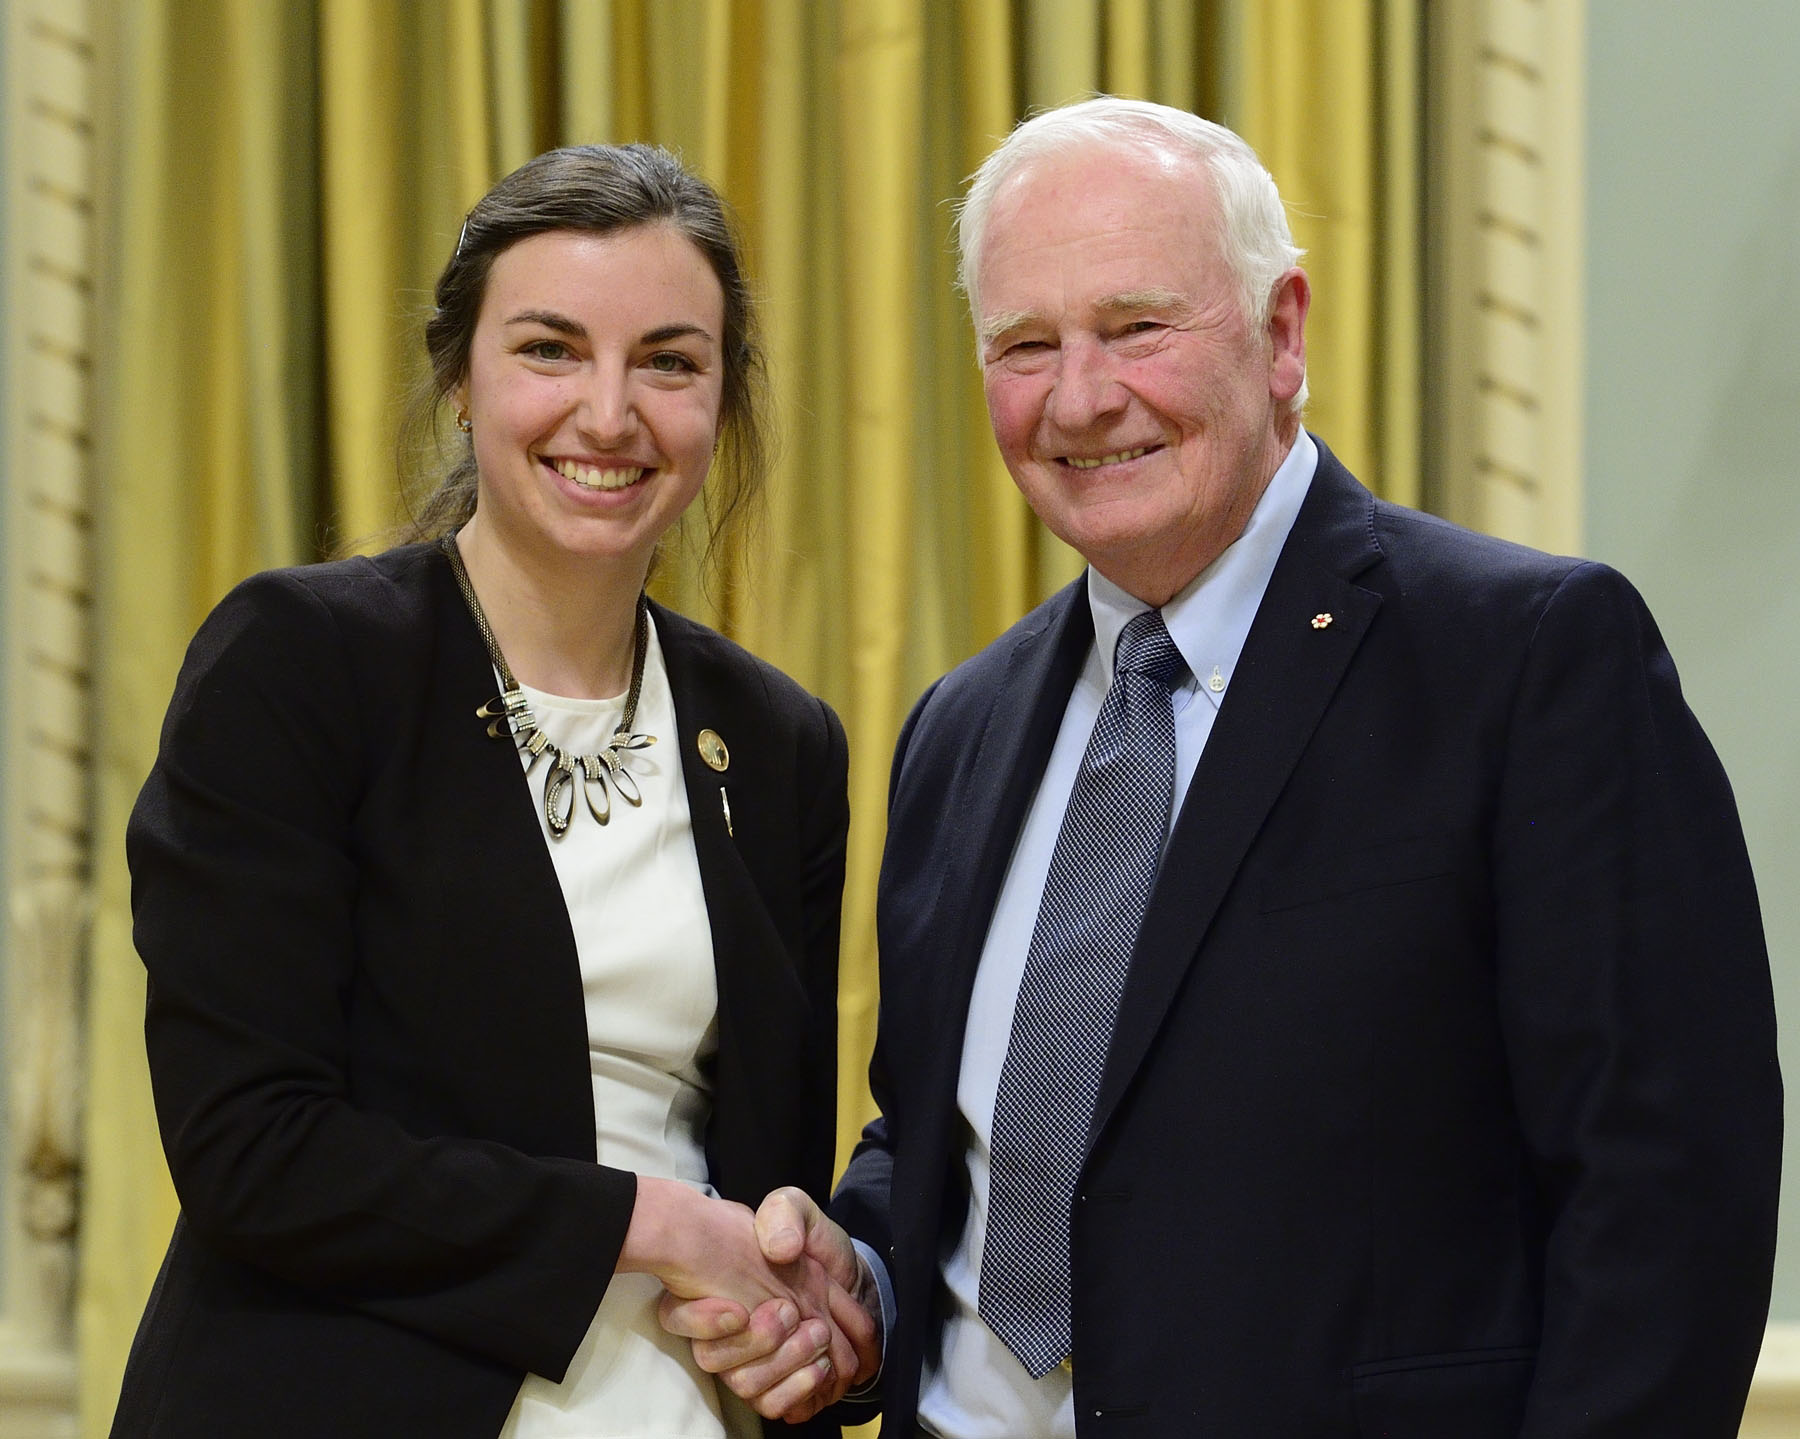 Madeleine Bonsma-Fisher received the NSERC Gilles Brassard Doctoral Prize for Interdisciplinary Research.